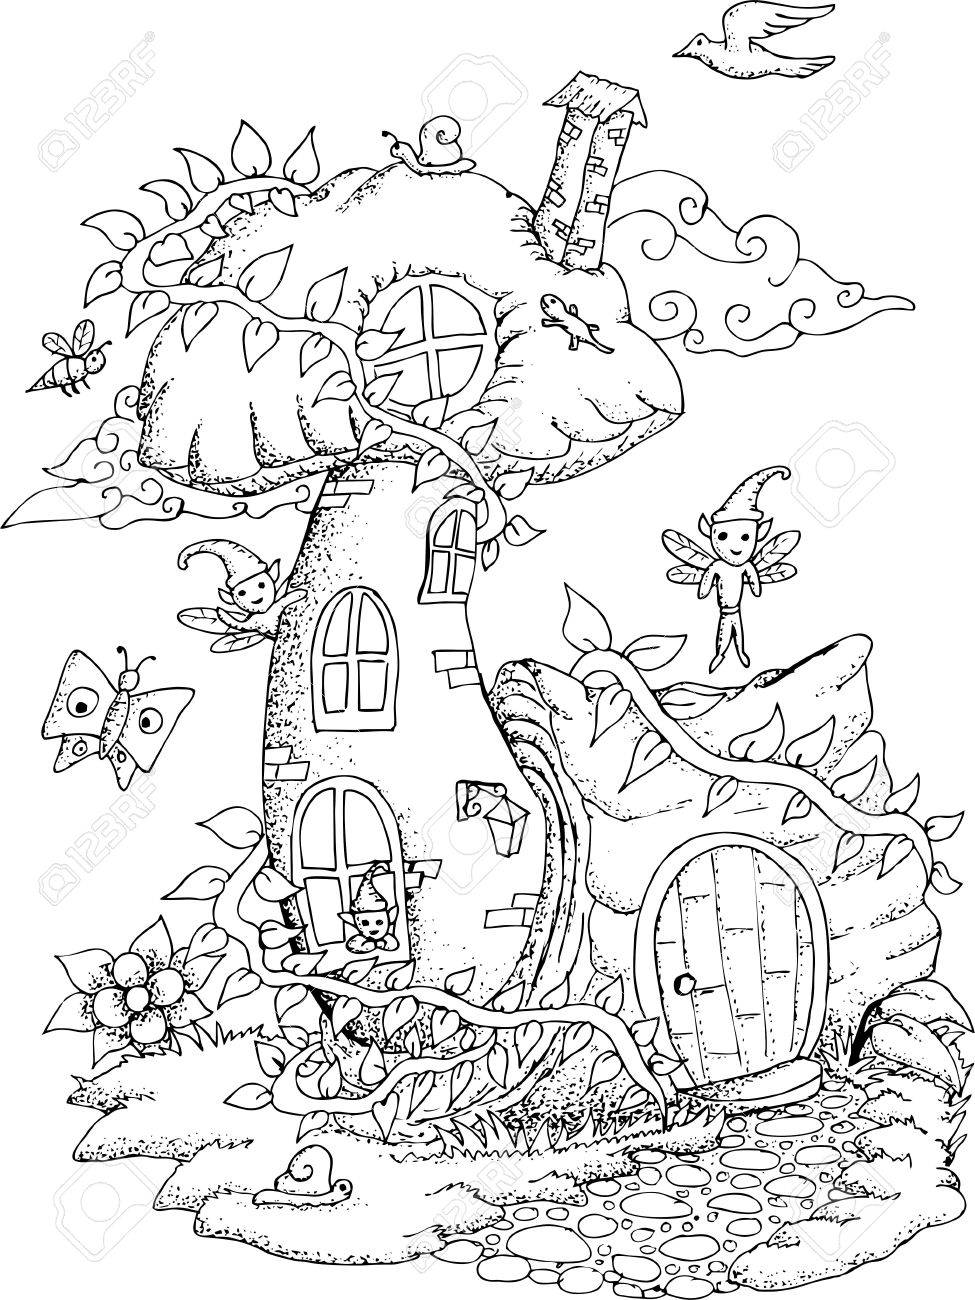 Black And White Illustration Of A Fairy House With Details For ...